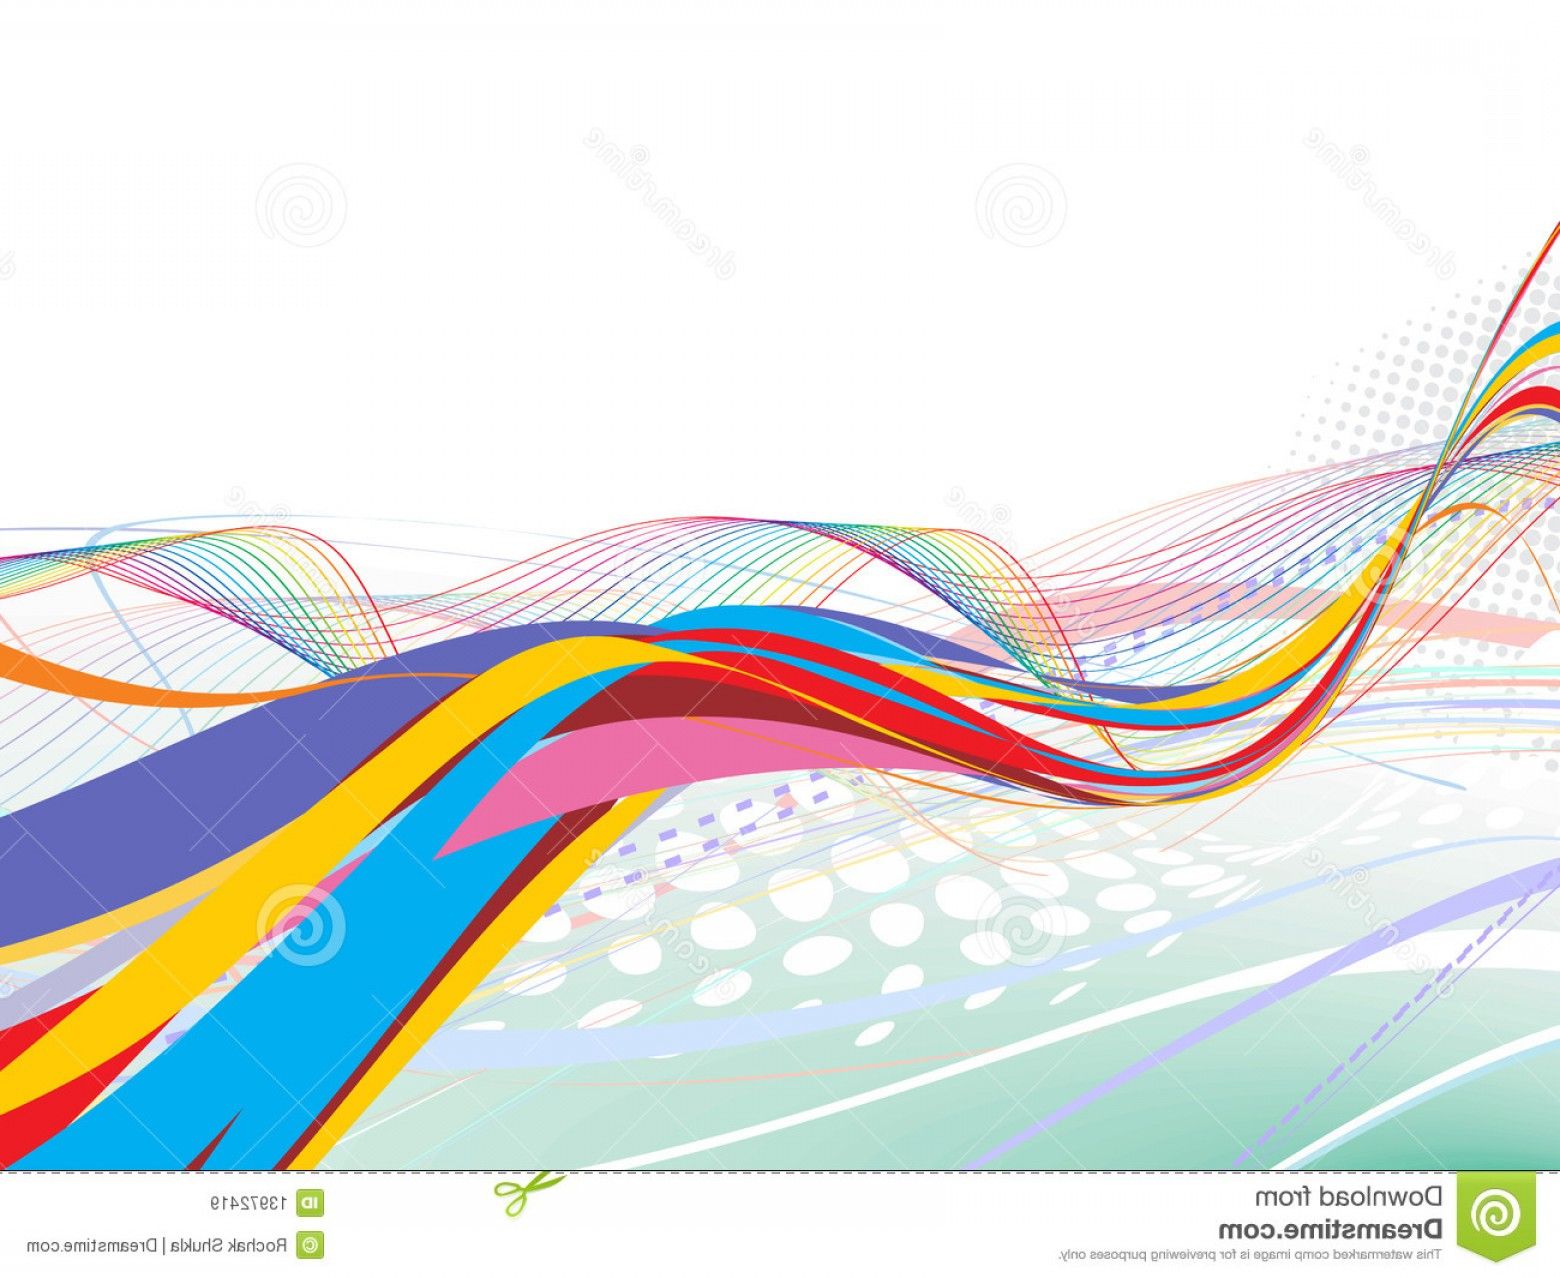 Rainbow Free Line Vector: Royalty Free Stock Images Abstract Rainbow Wave Line Image